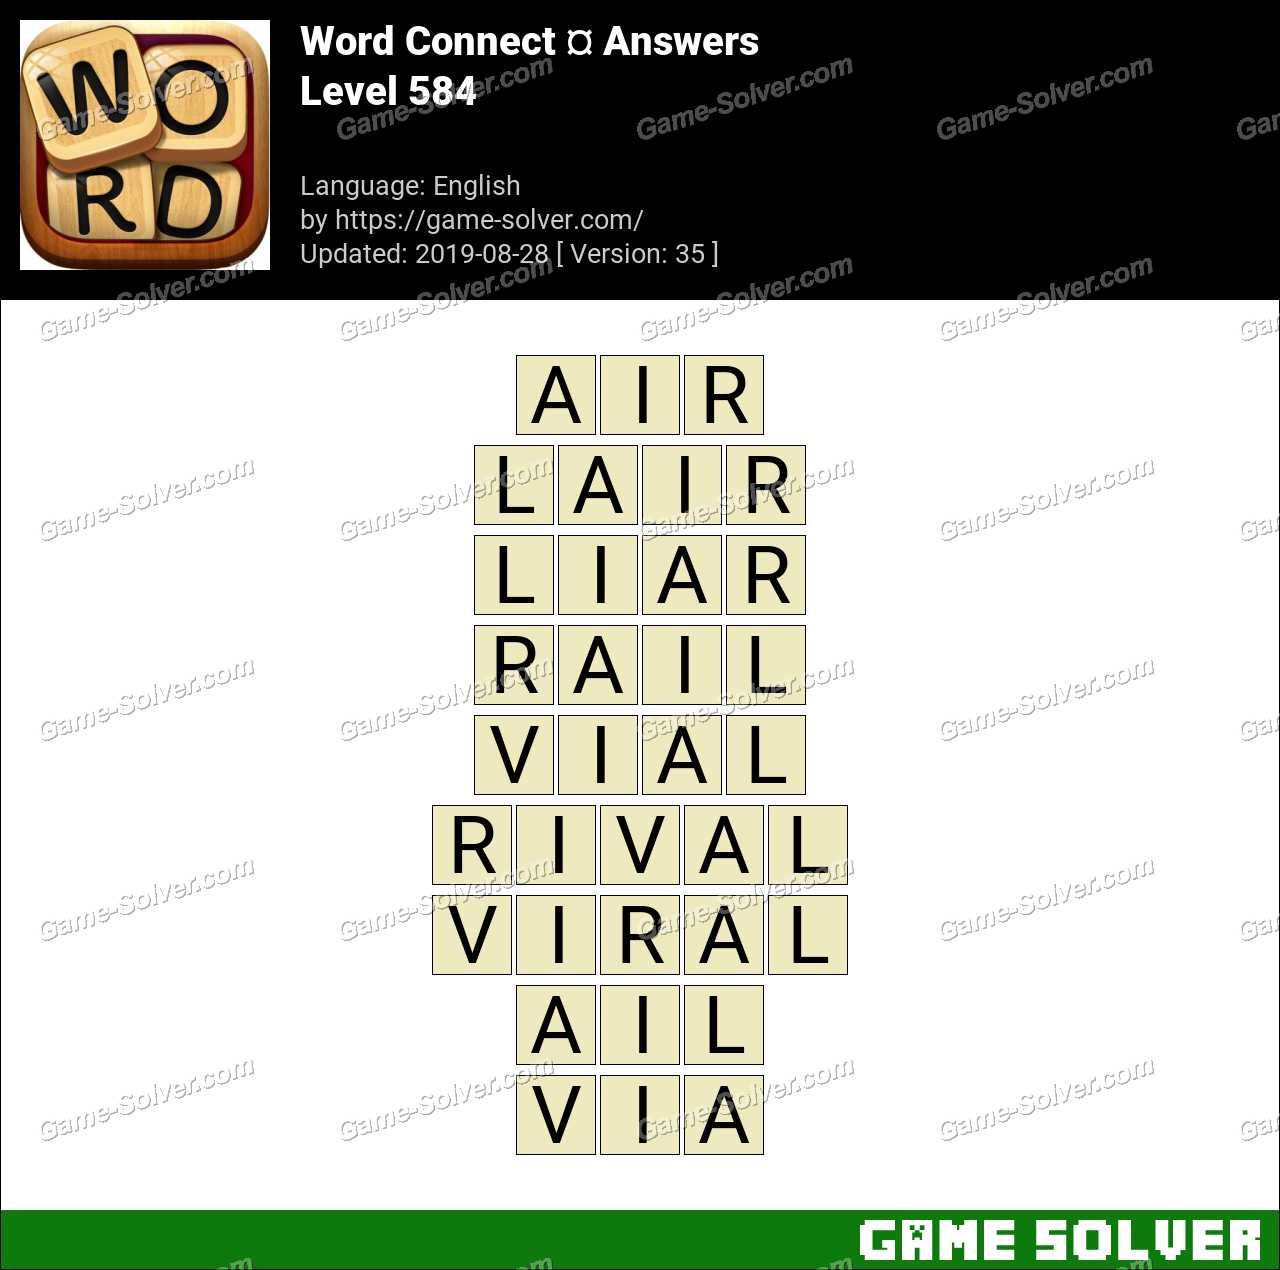 Word Connect Level 584 Answers